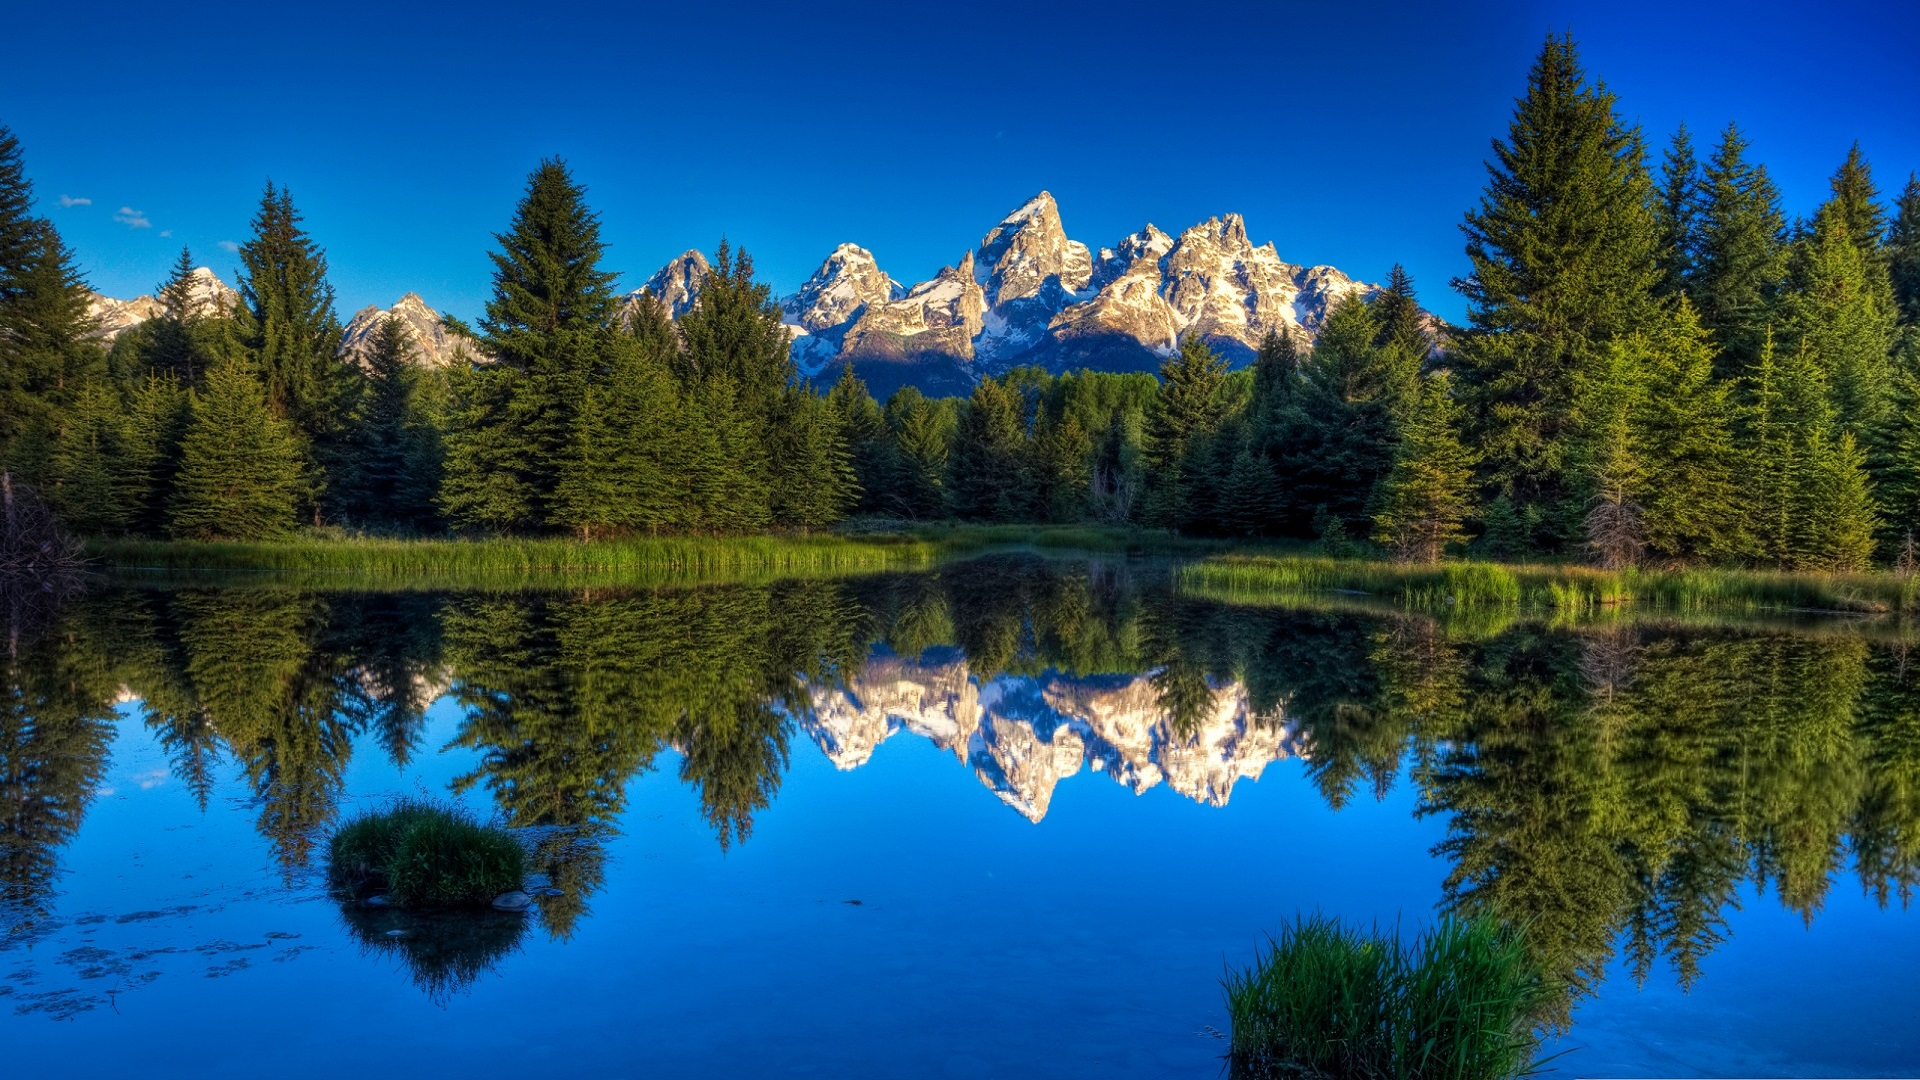 beautiful hd mountains 3d reflection best wallpaper free download